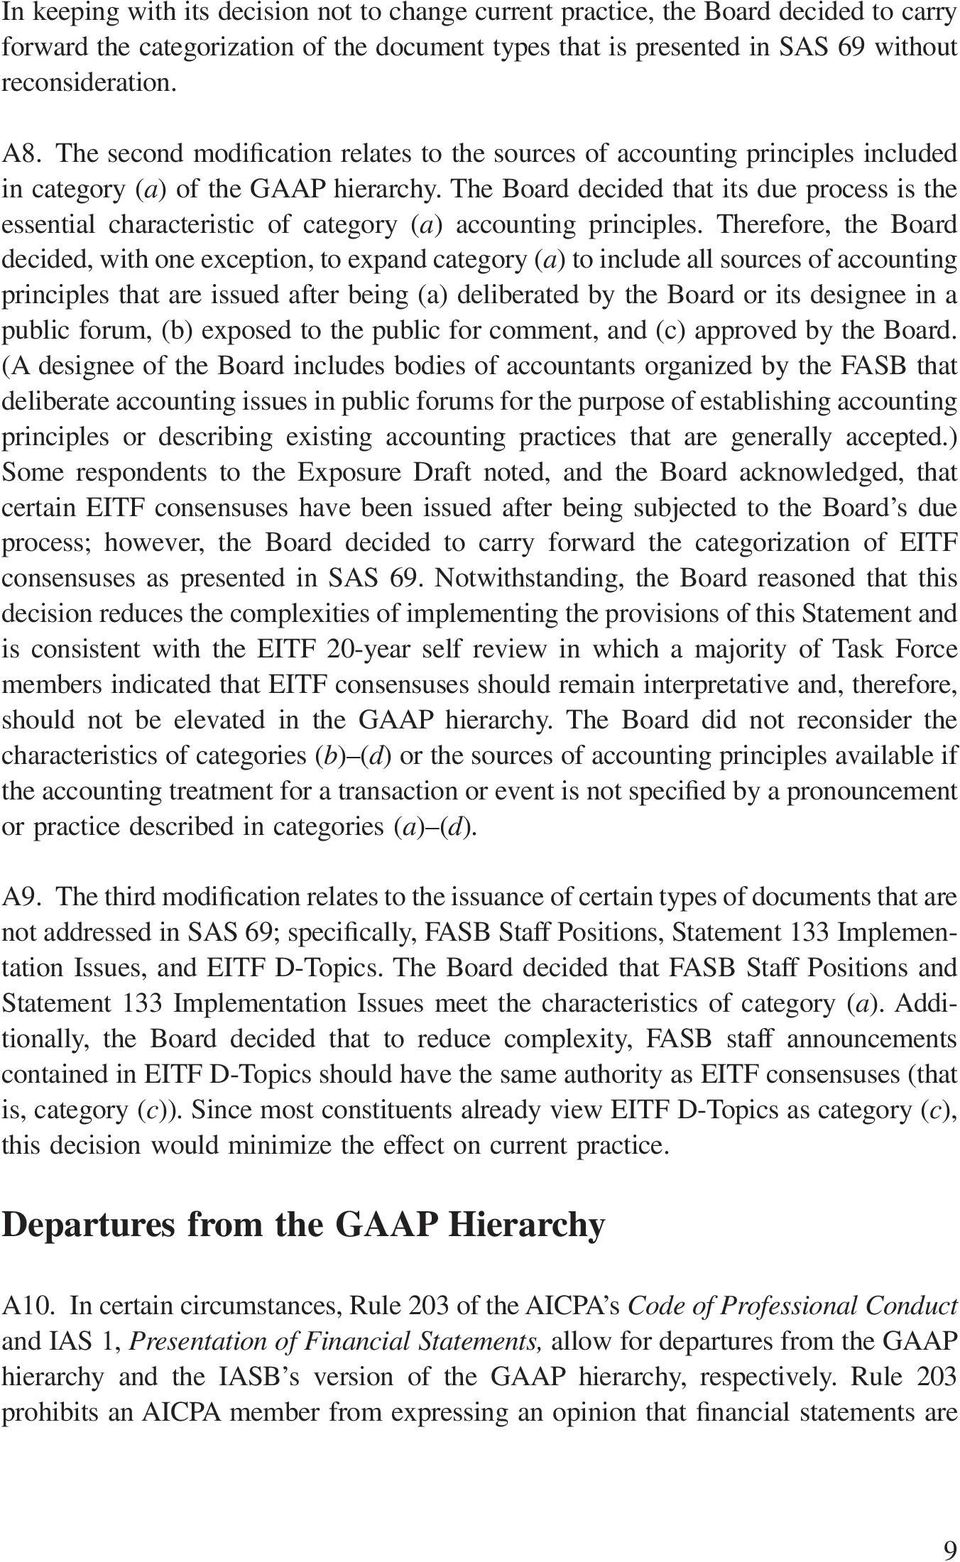 The Board decided that its due process is the essential characteristic of category (a) accounting principles.